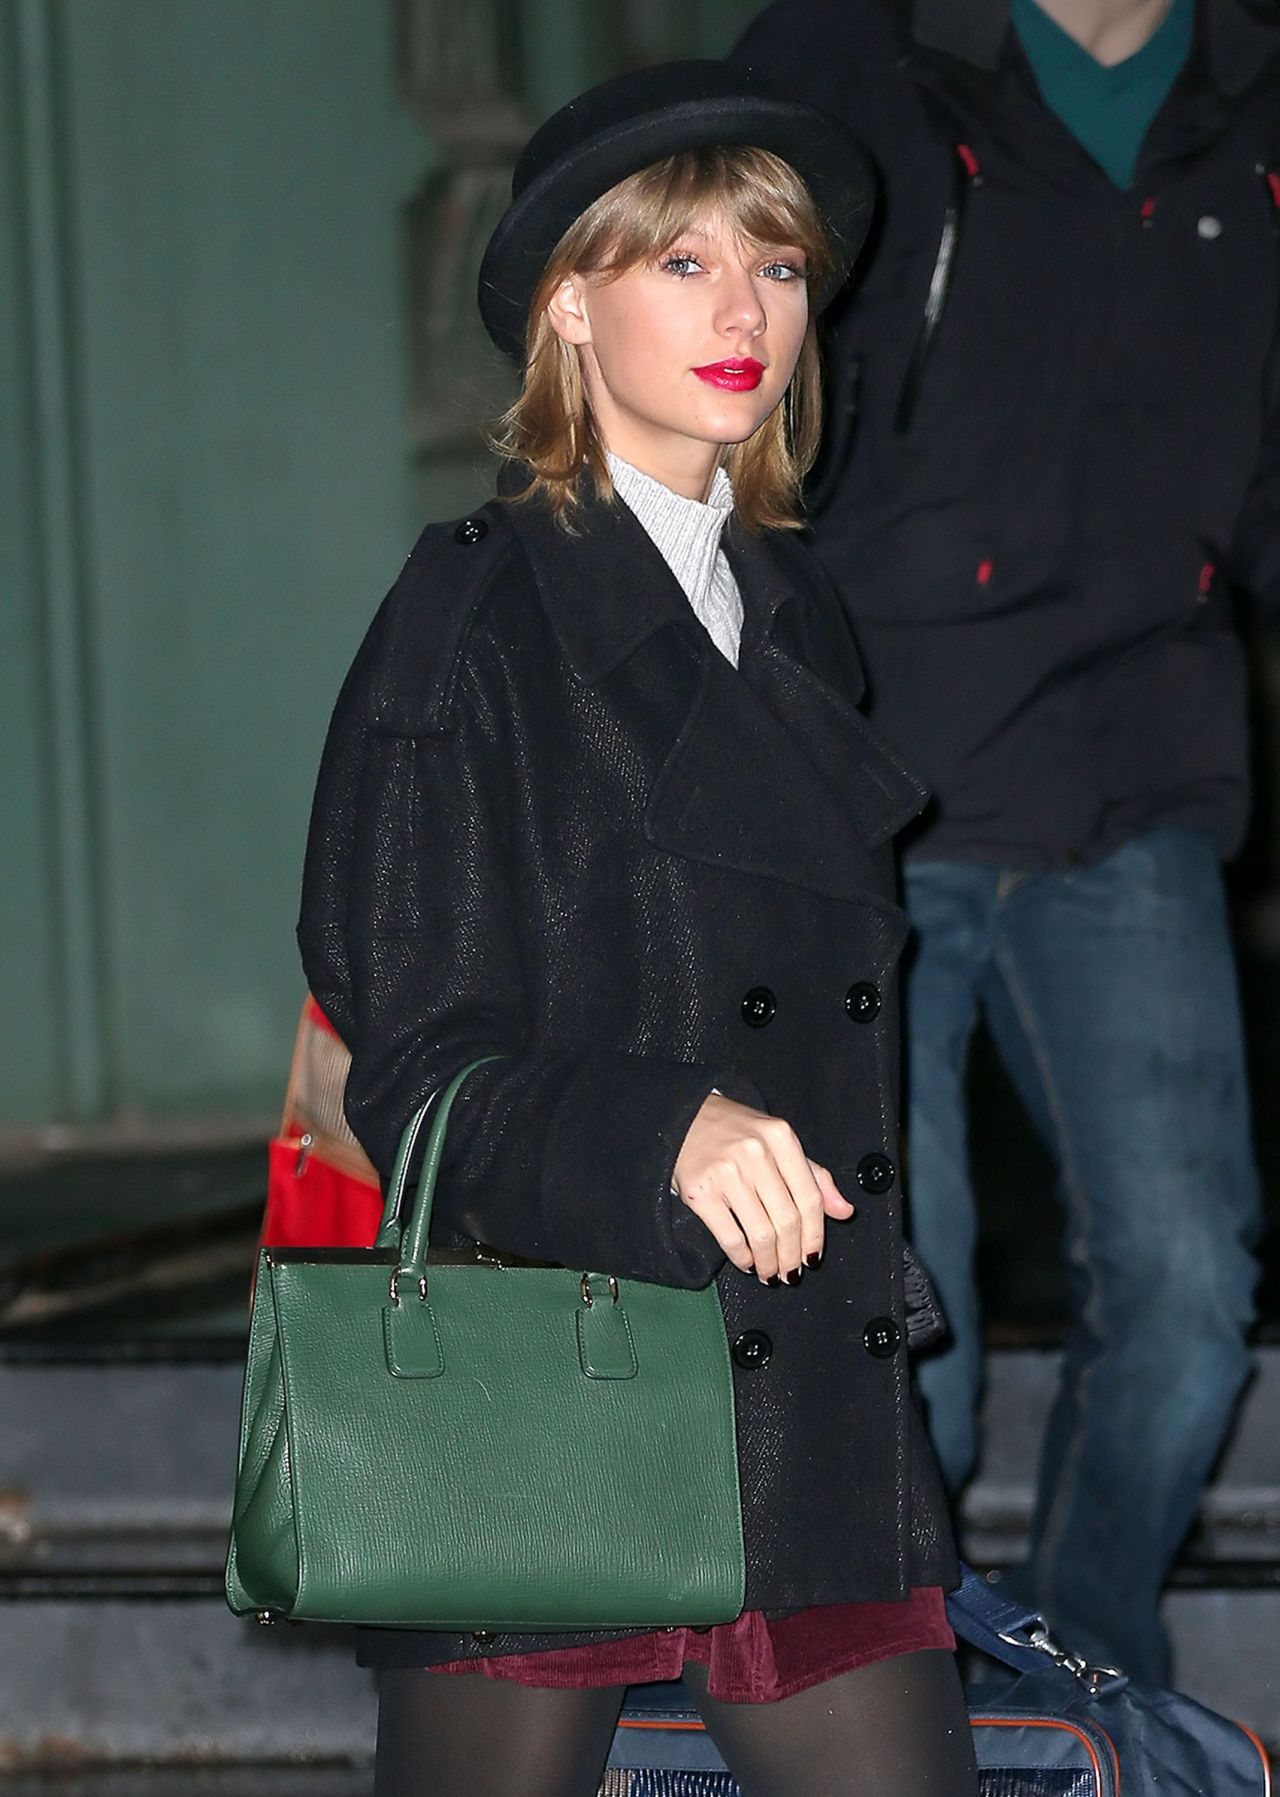 Taylor Swift Street Style - Leaving Her Apartment in New York City - Jan. 2015